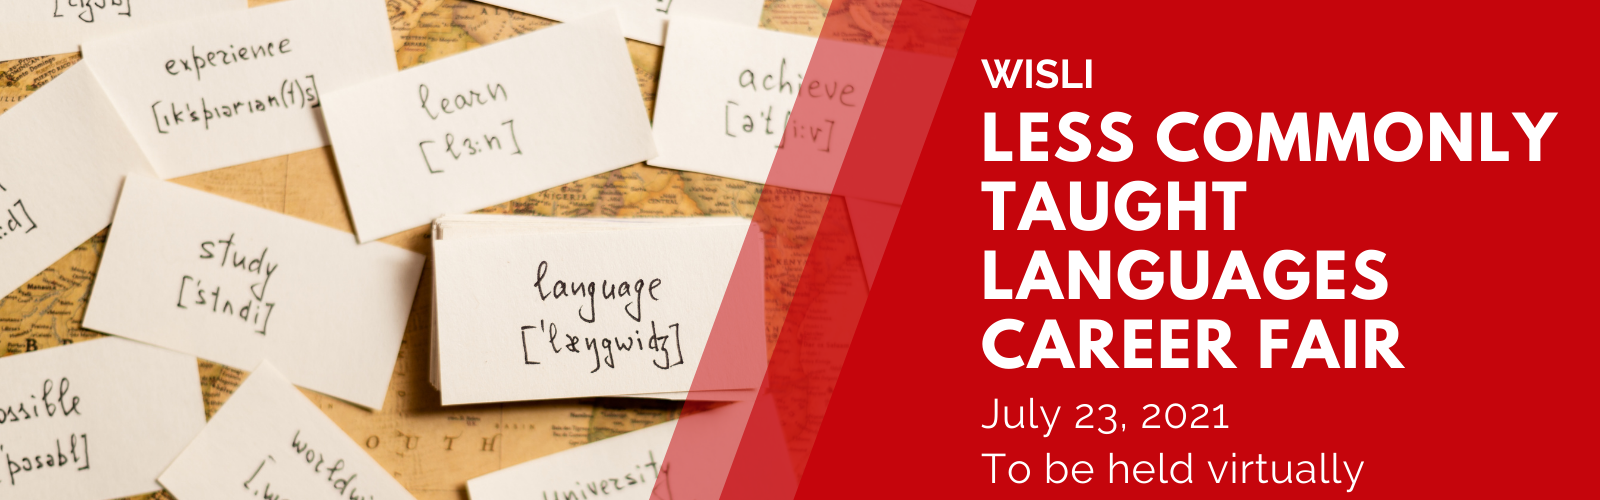 Less commonly taught languages career fair on 2021